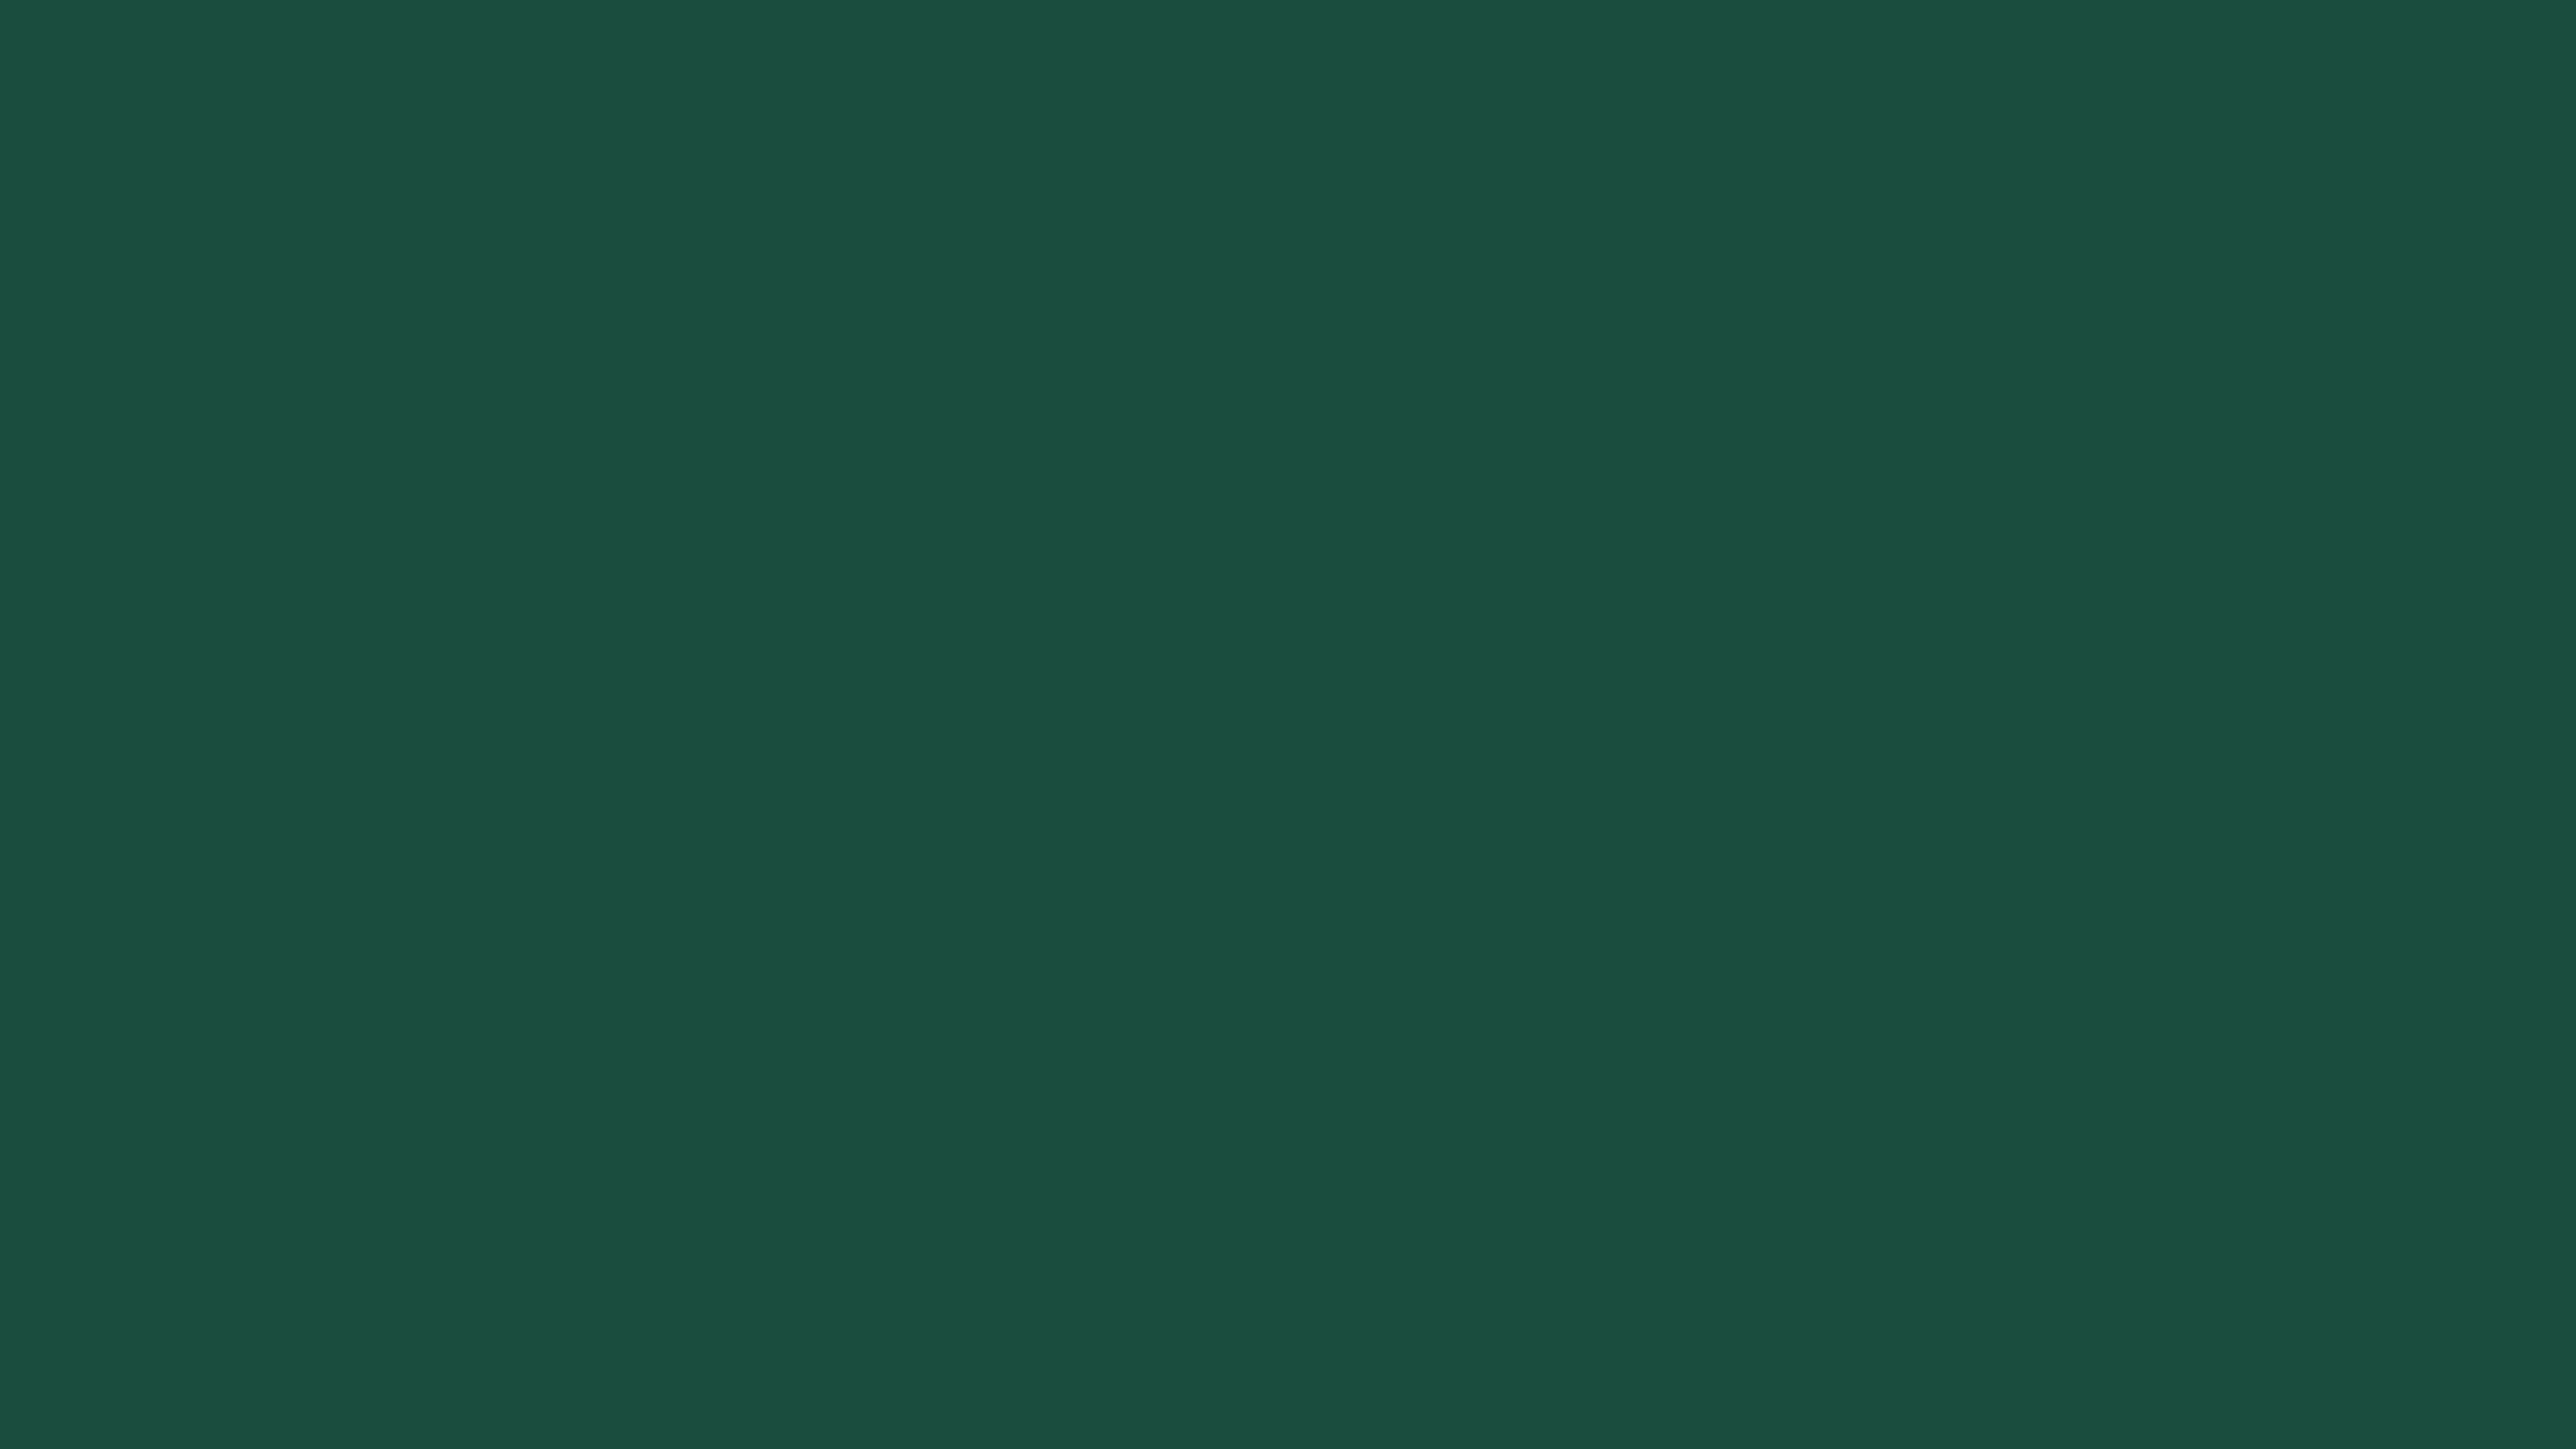 3840x2160 Brunswick Green Solid Color Background